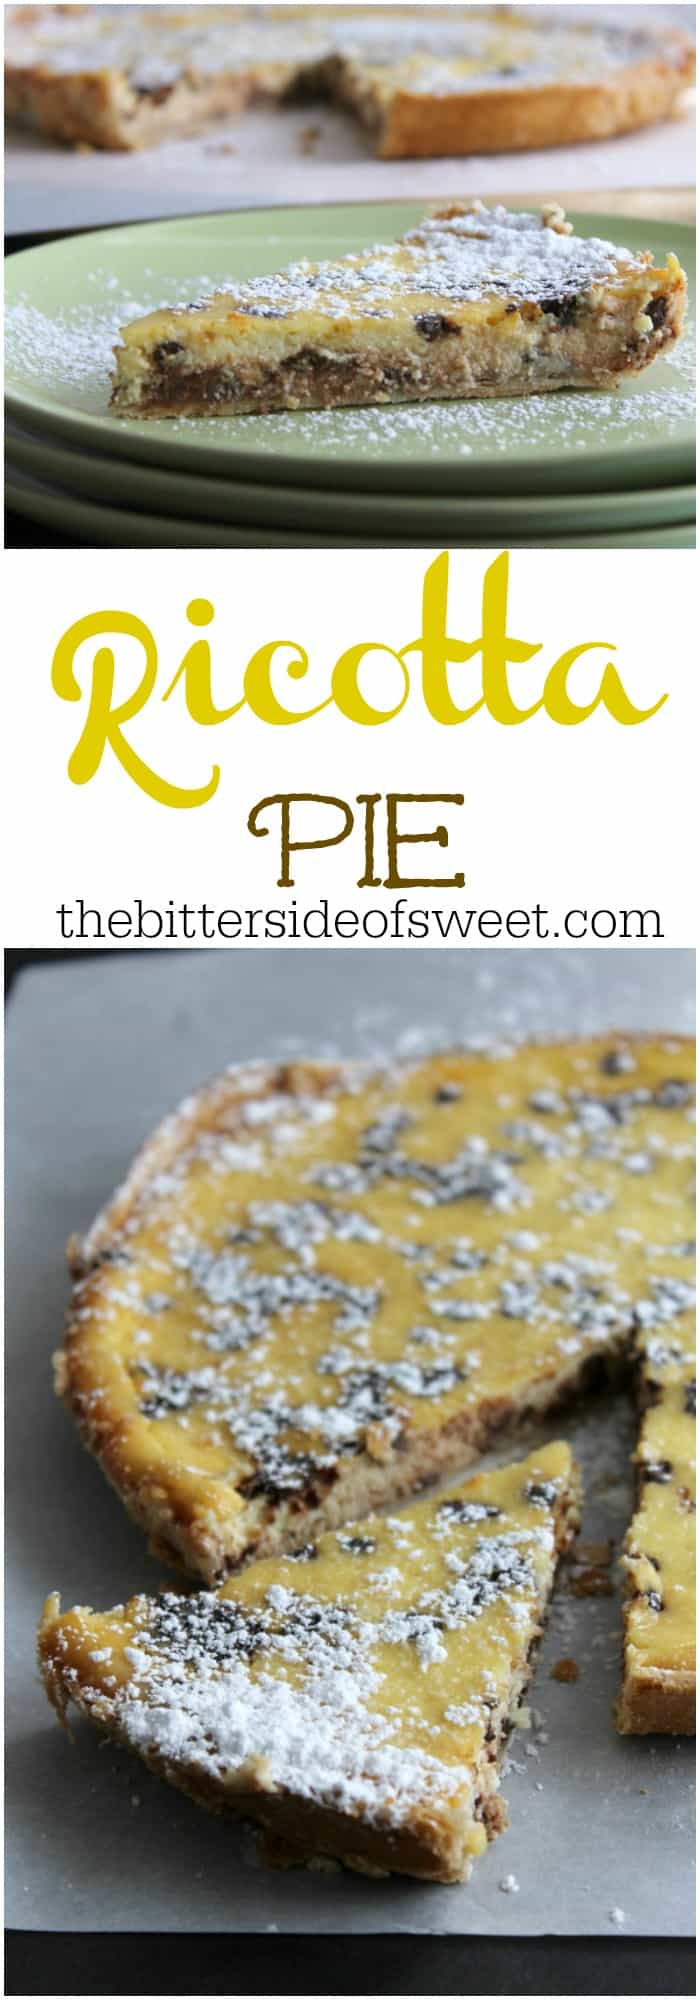 Ricotta Pie Fwcon Makeitwithmilk The Bitter Side Of Sweet